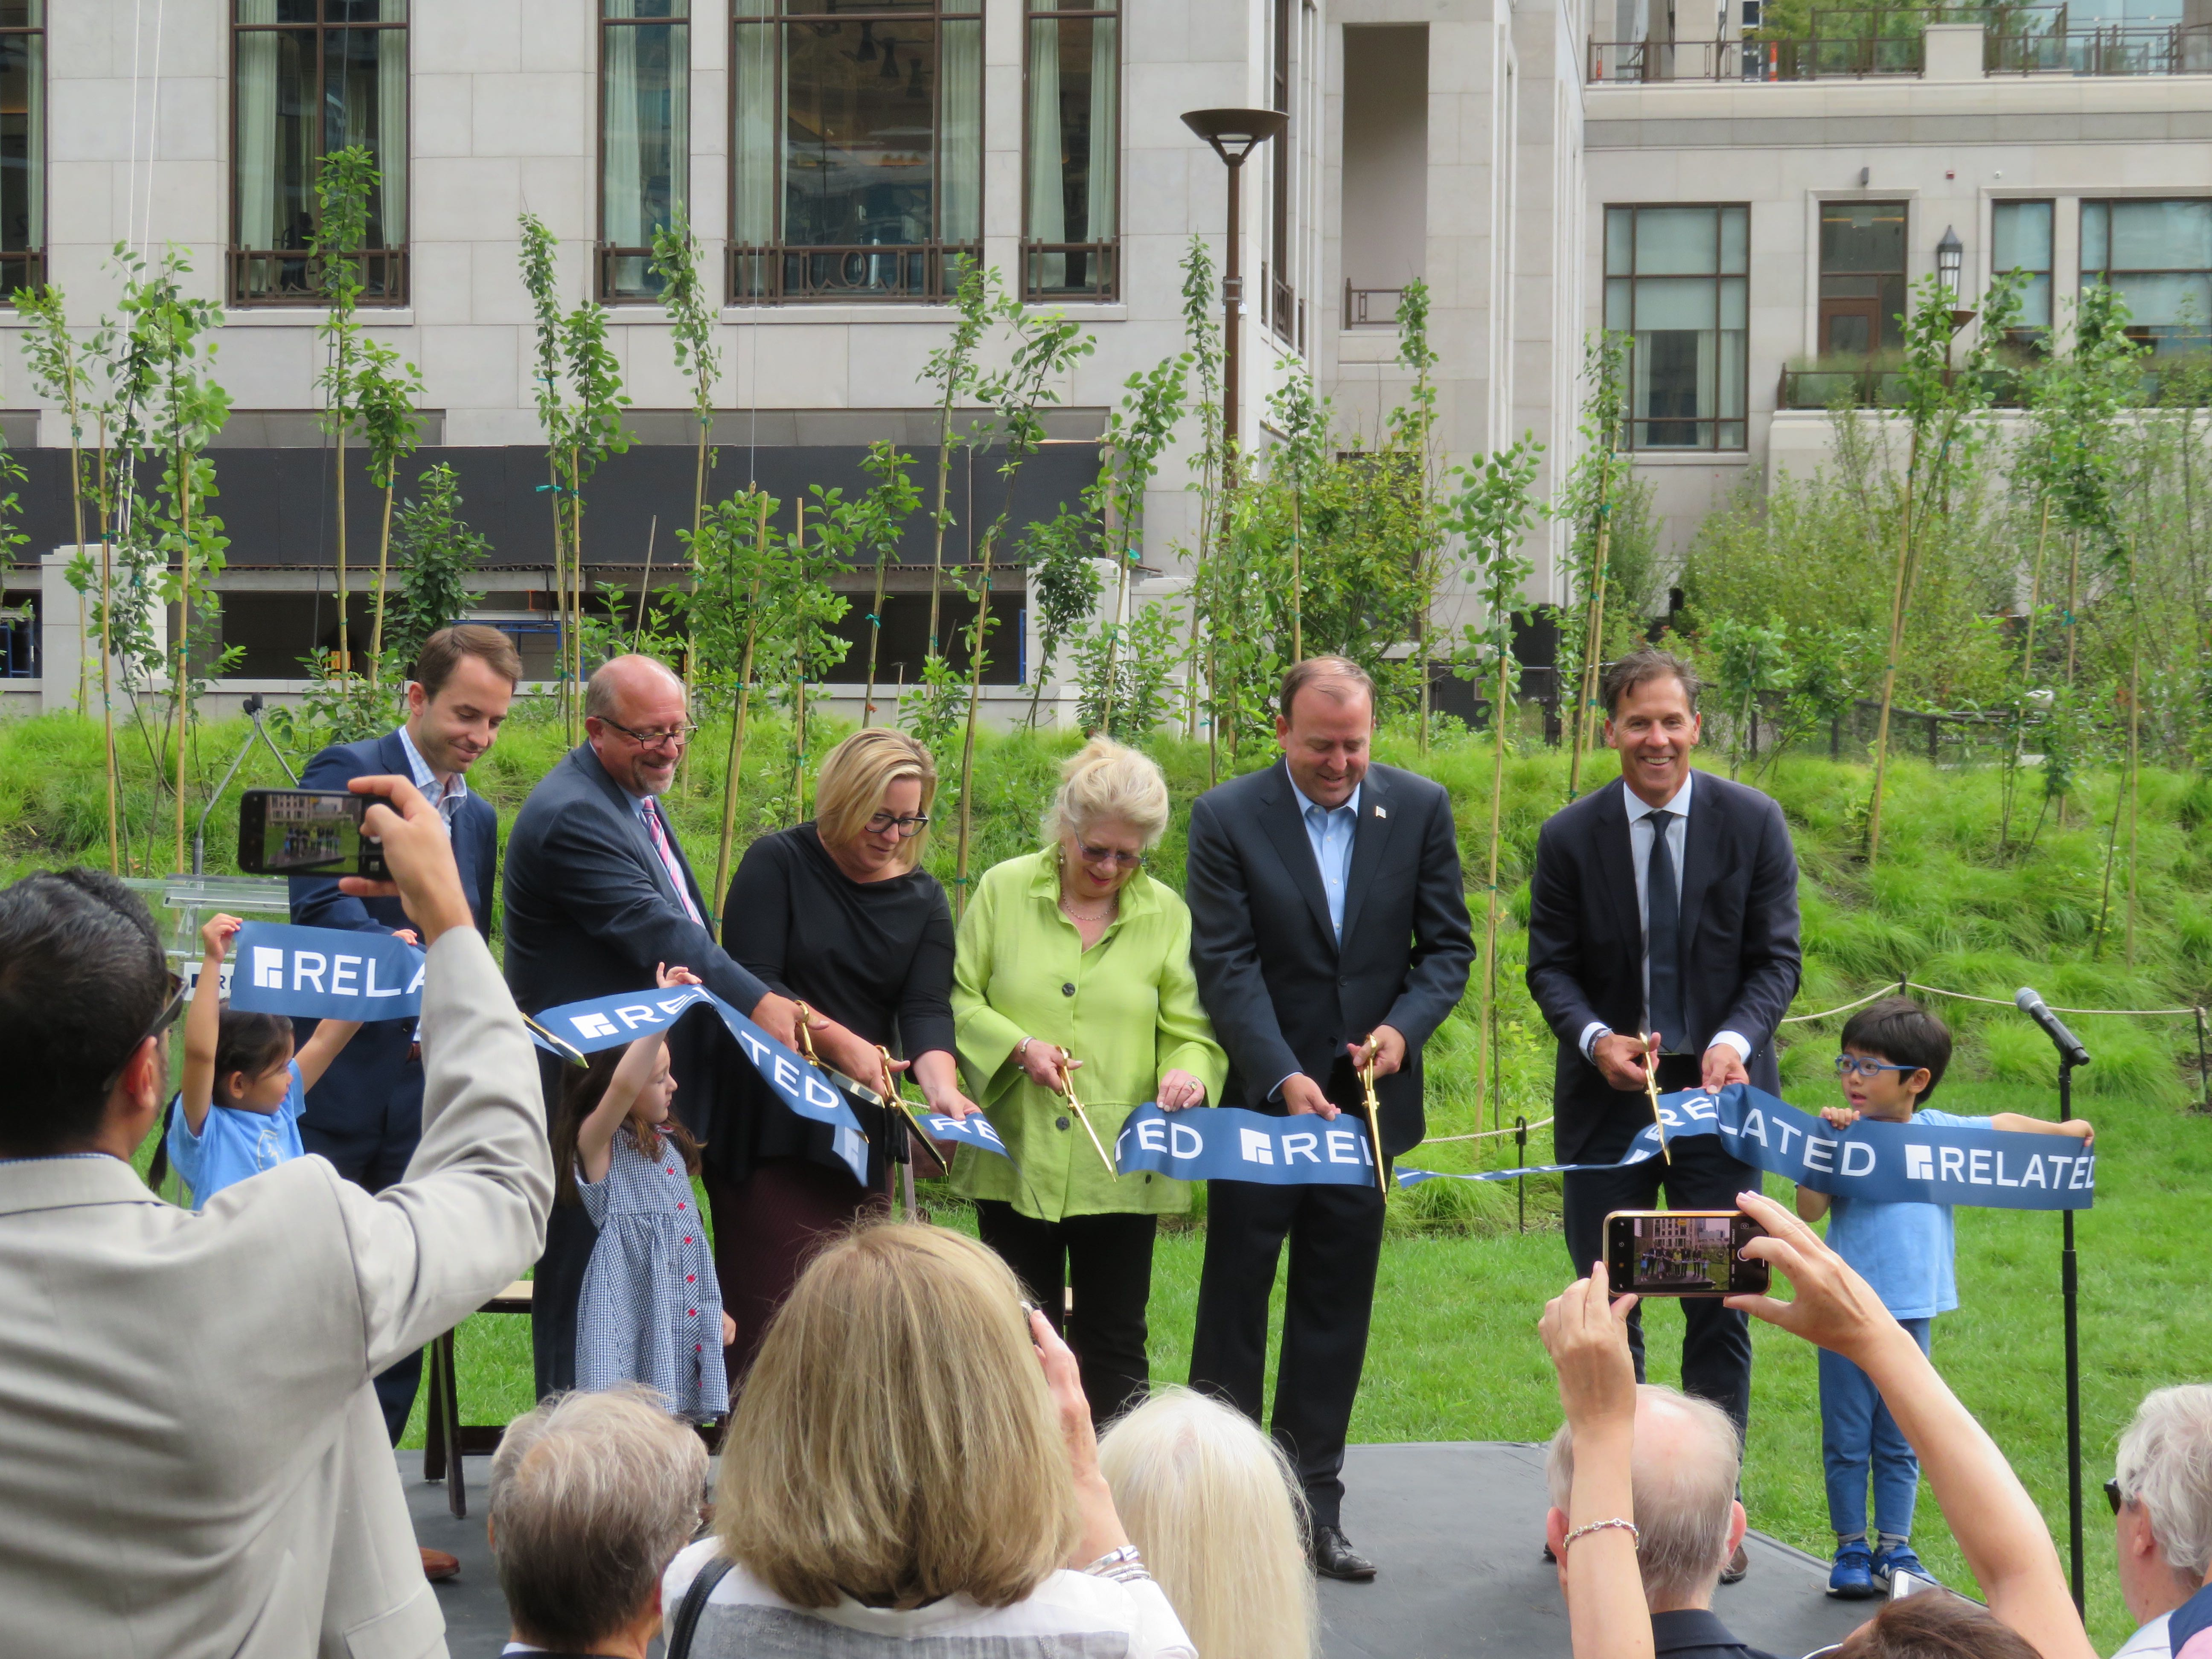 Bennett Park brings new playground, dog runs, and lush landscaping to Streeterville